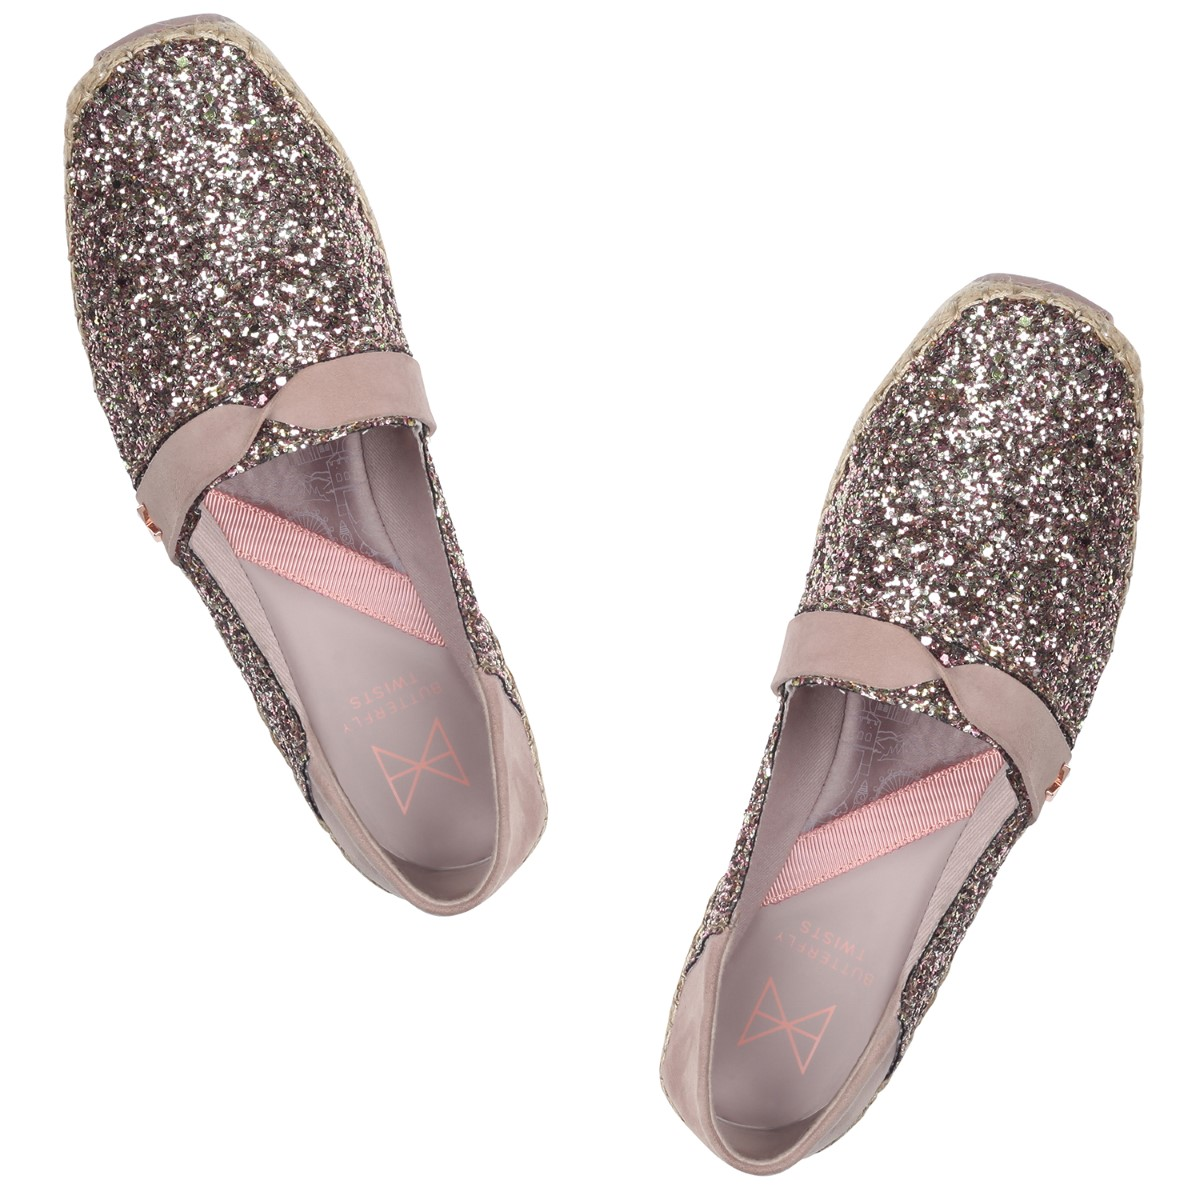 Butterfly Twists metalické boty Maya Rose Gold Glitter/Fawn Suede - 37